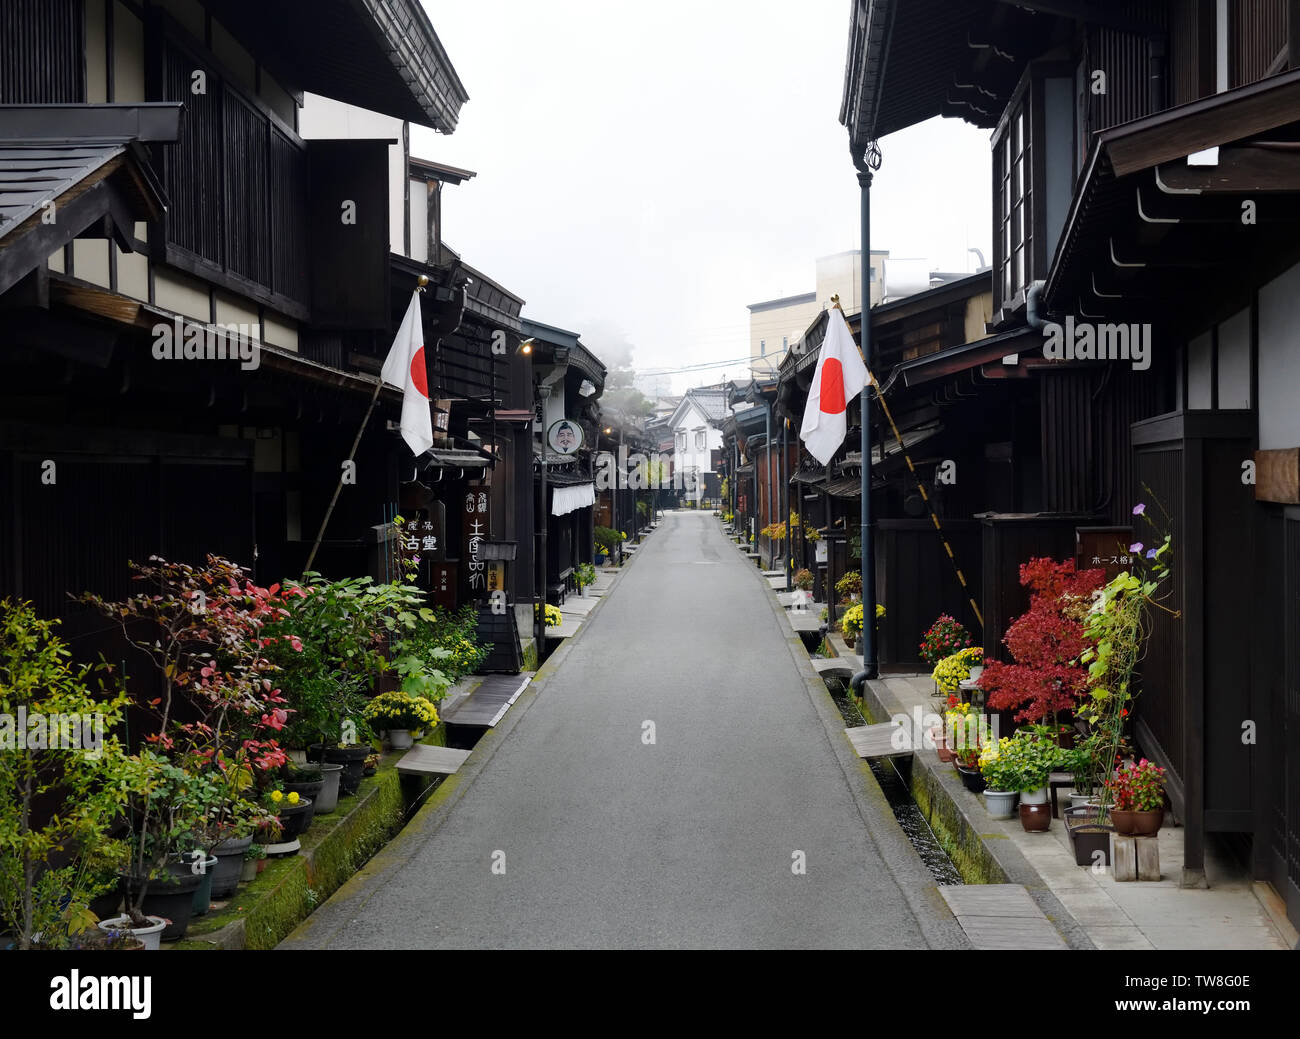 Morning scenery of Kamisannomachi, old town street in Takayama city with Japanese flags outside on a Culture day public holiday in Japan. Kami-sannoma - Stock Image